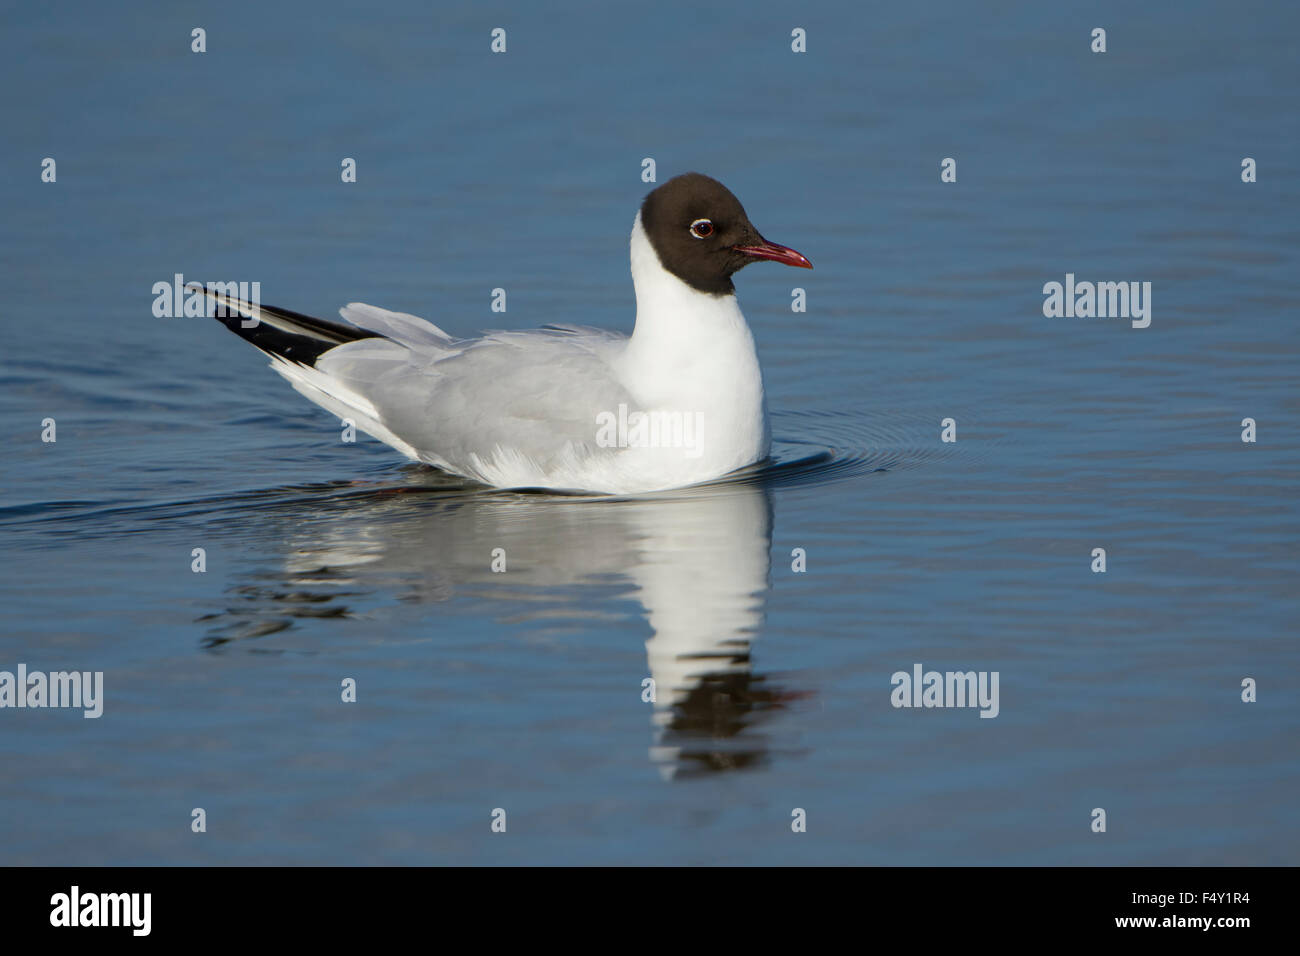 An adult Black Headed Gull in breeding plumage swimming in blue water with reflection. Rye Harbour Nature Reserve, Stock Photo